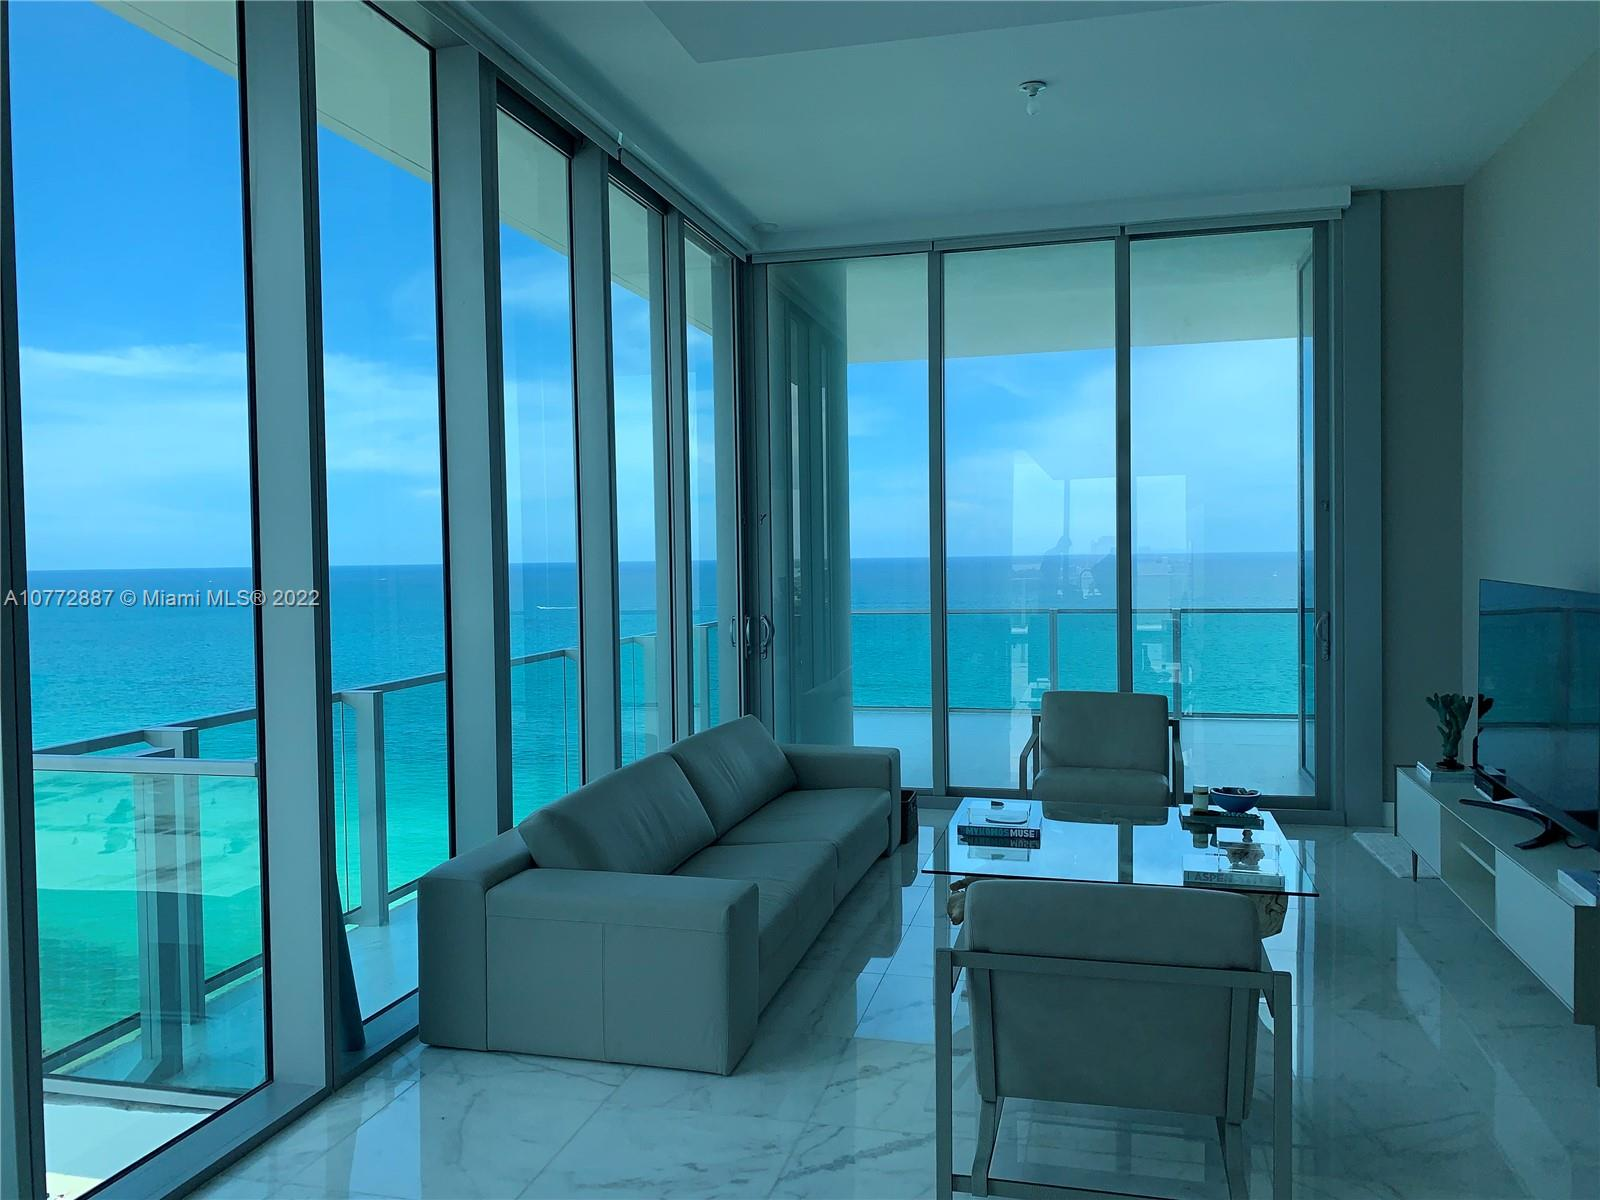 6901  Collins Ave #1603 For Sale A10772887, FL